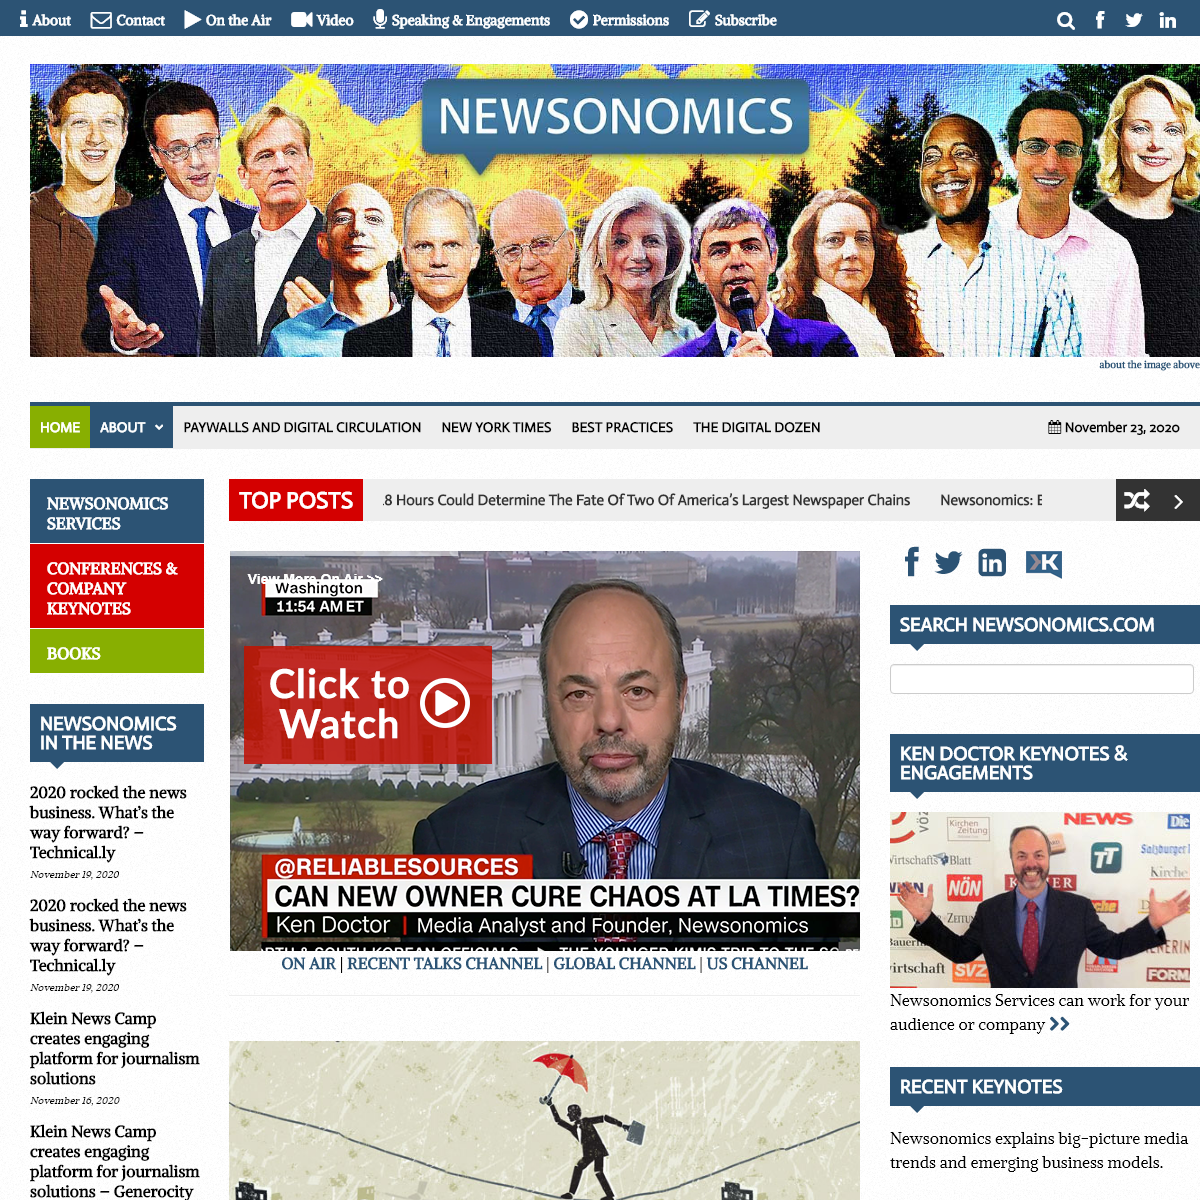 Newsonomics - On the transformation of the news business